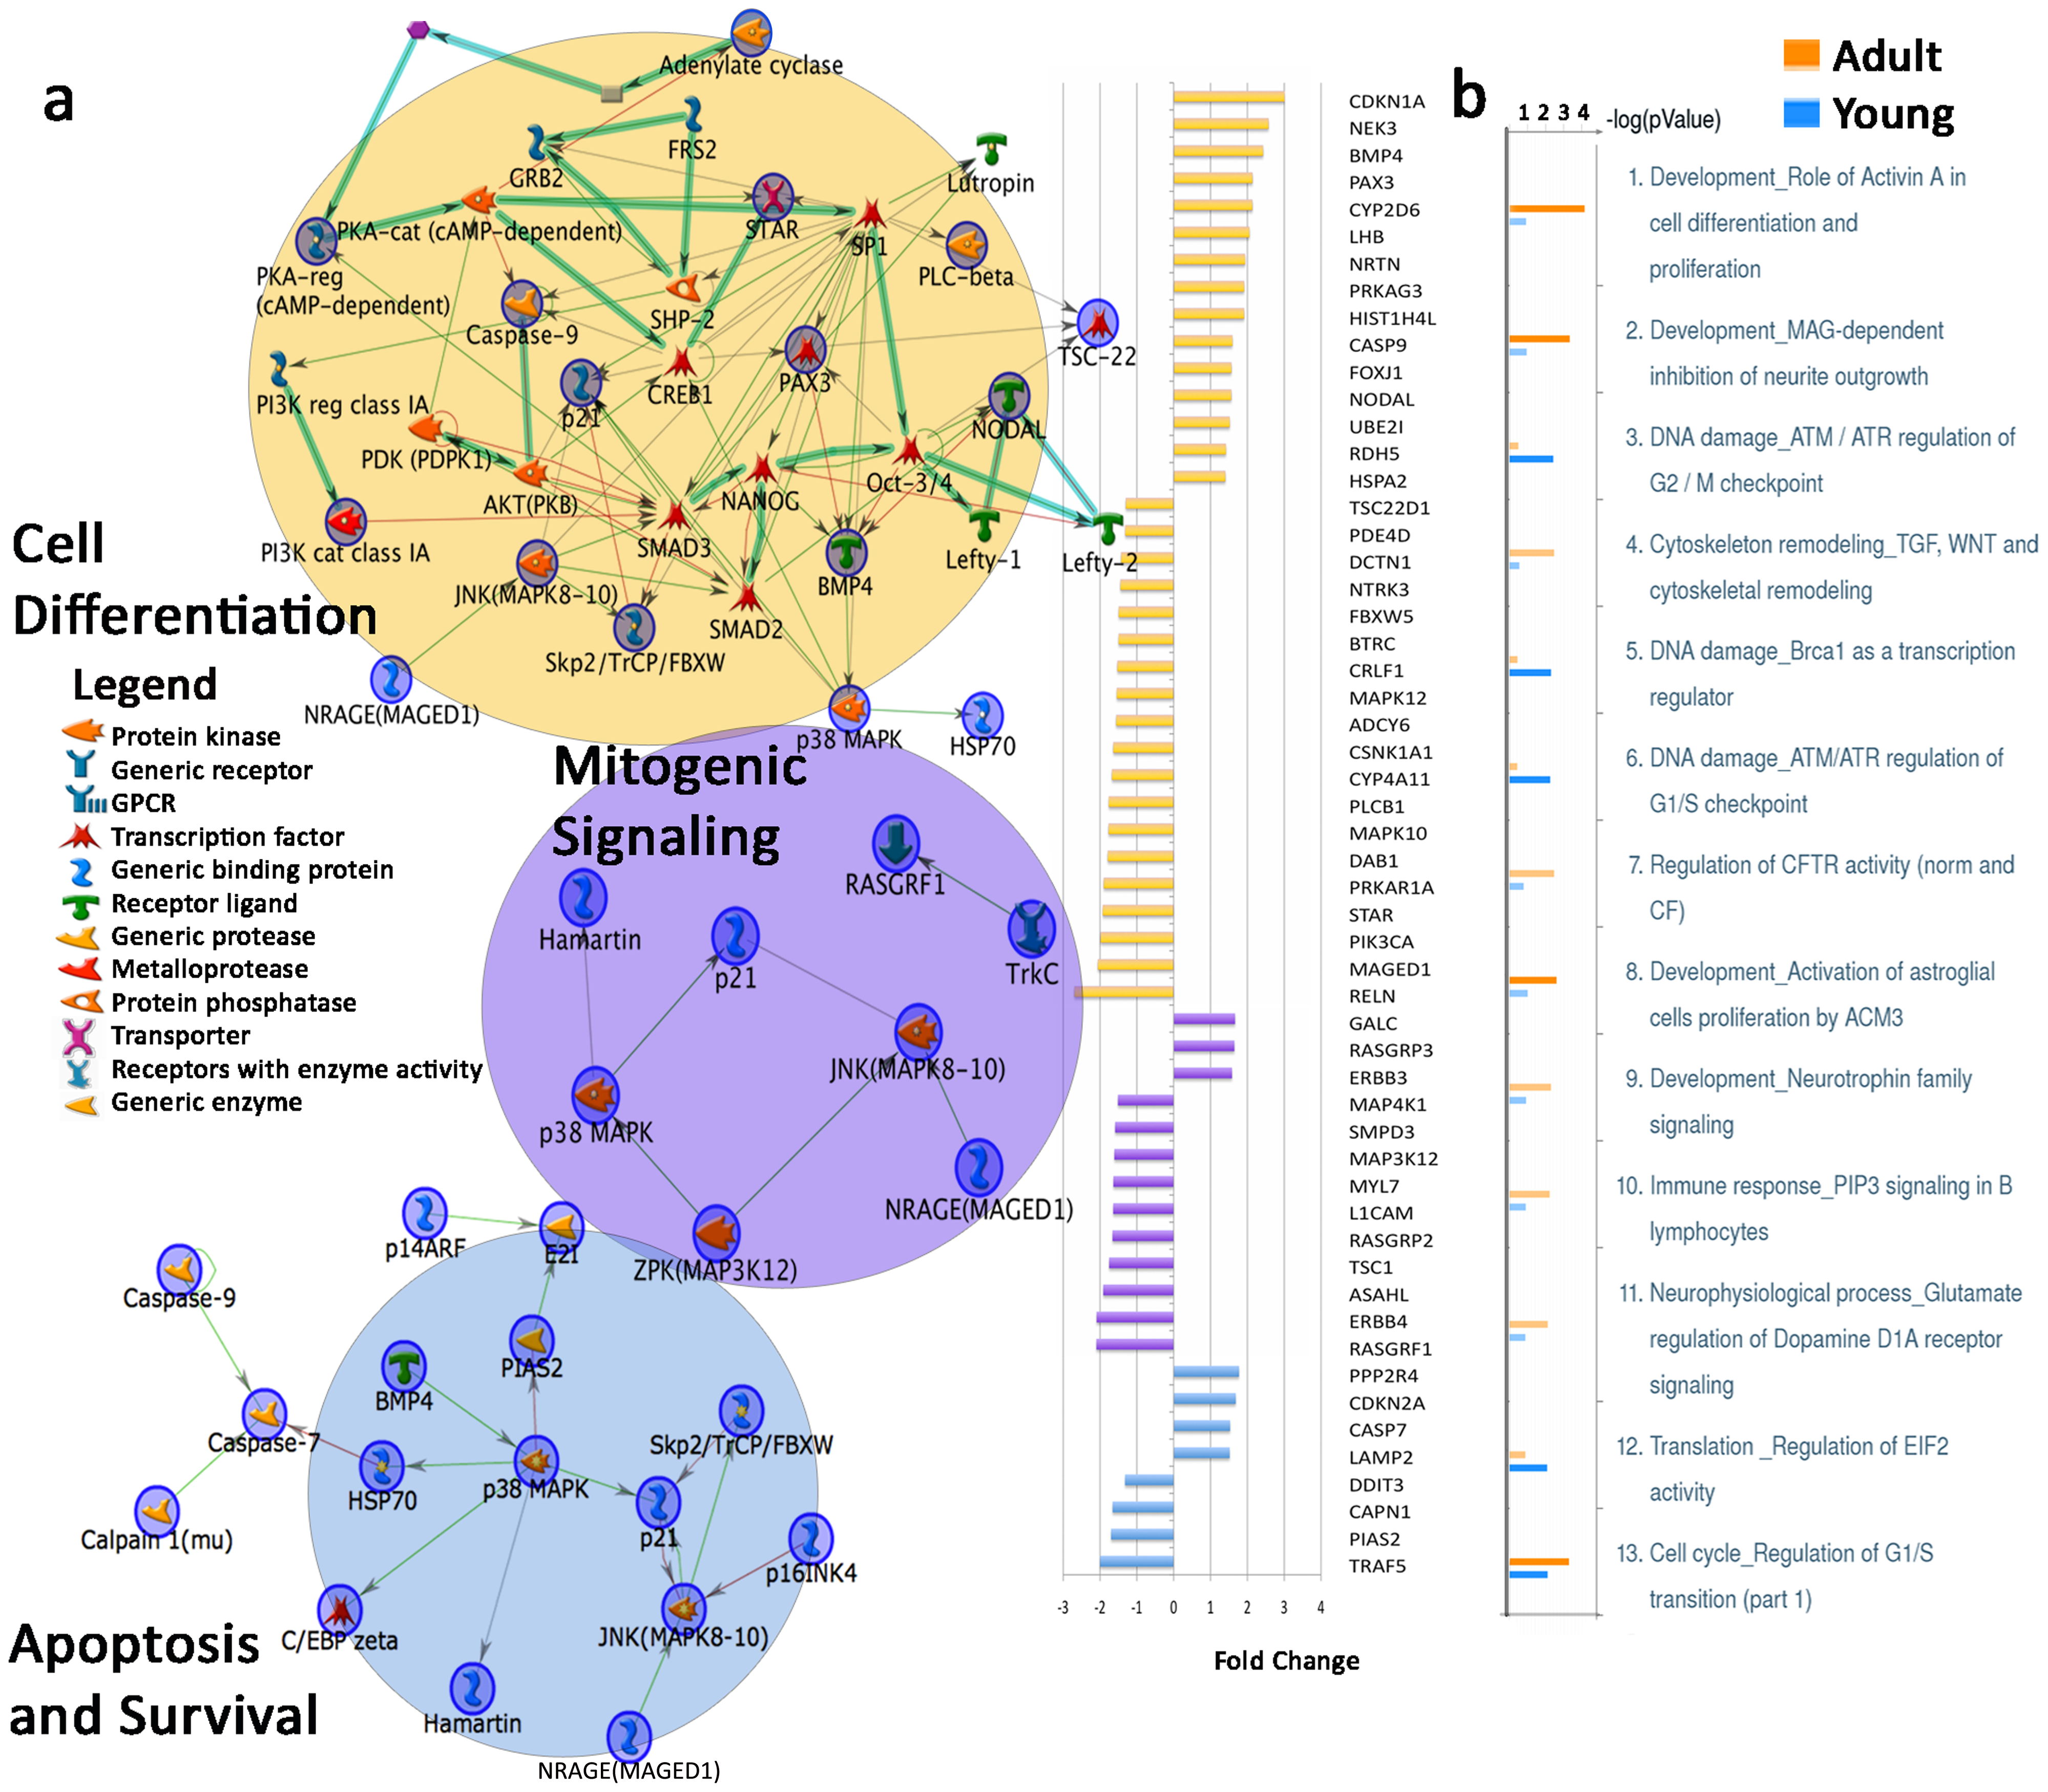 Dysregulated gene expression in top three Map Folders in adult autistic prefrontal cortex and differentially affected M-Pathways of young and adult autistic cases.